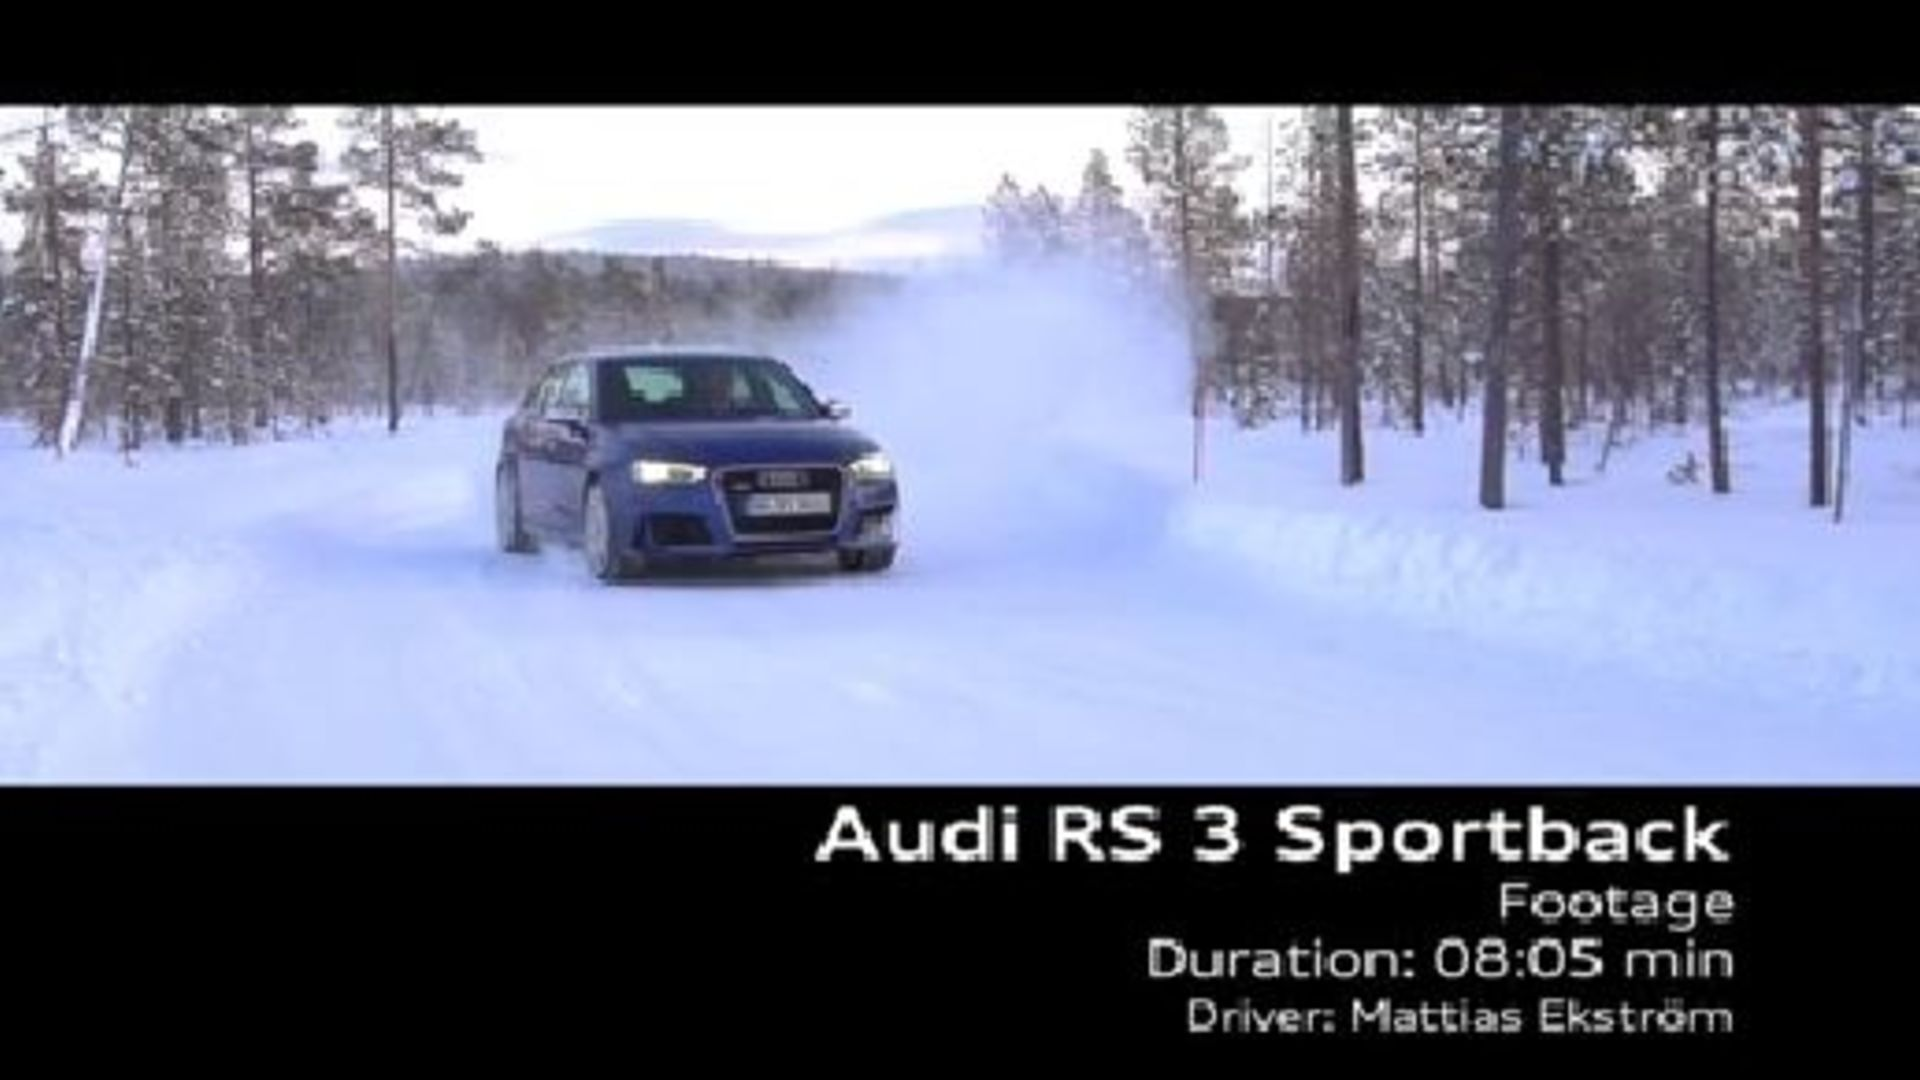 The new Audi RS 3 Sportback / Footage